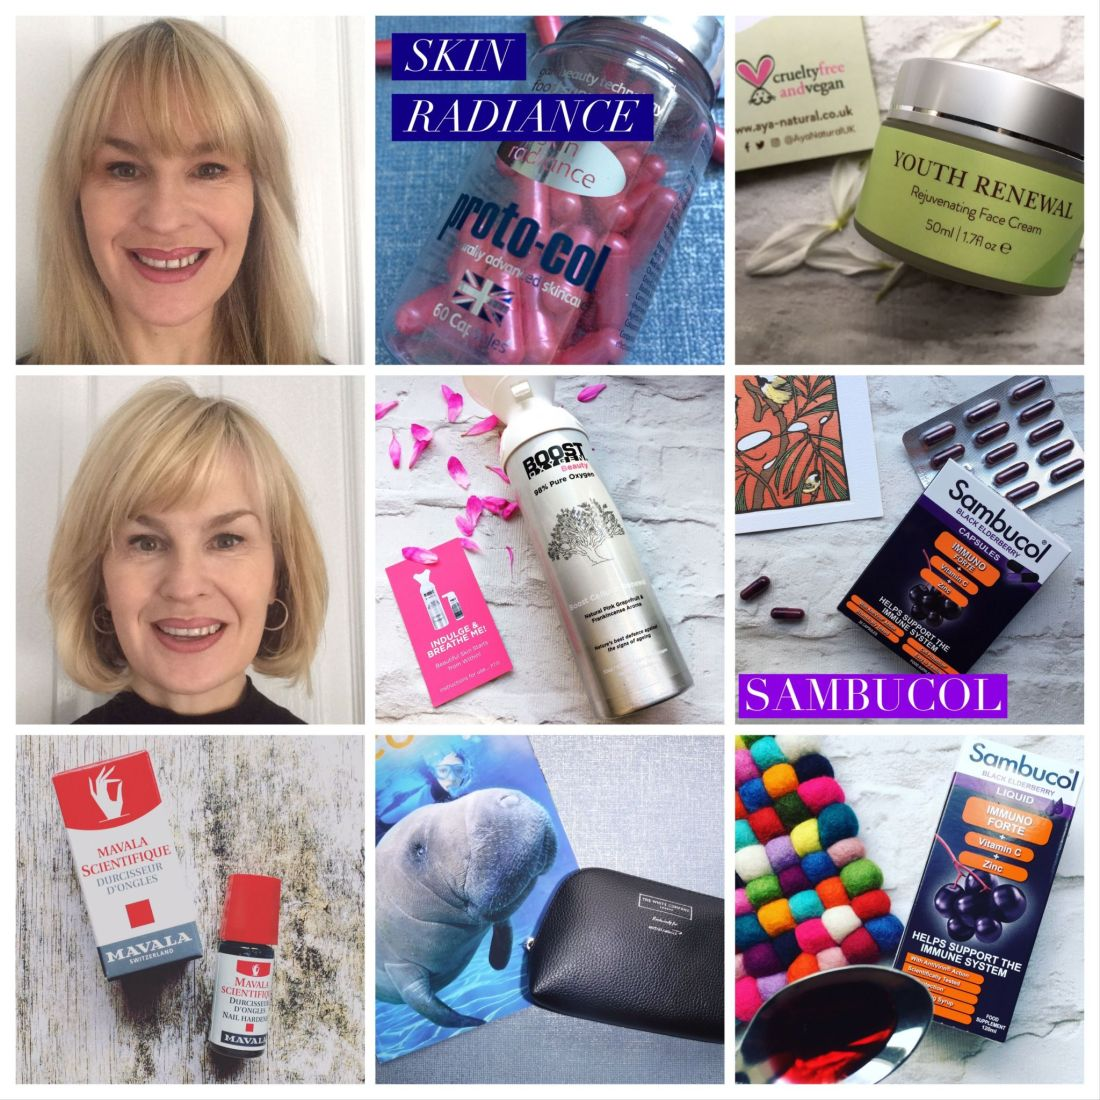 9 picture grid, photos of Proto-col skin radiance.,Aya Natural Youth renewal cream. Boots Beauty Oxygen. Sambucol capsules and syrup. White Company amenity kit. Mavala Nail care, manatee, Picture of Emily